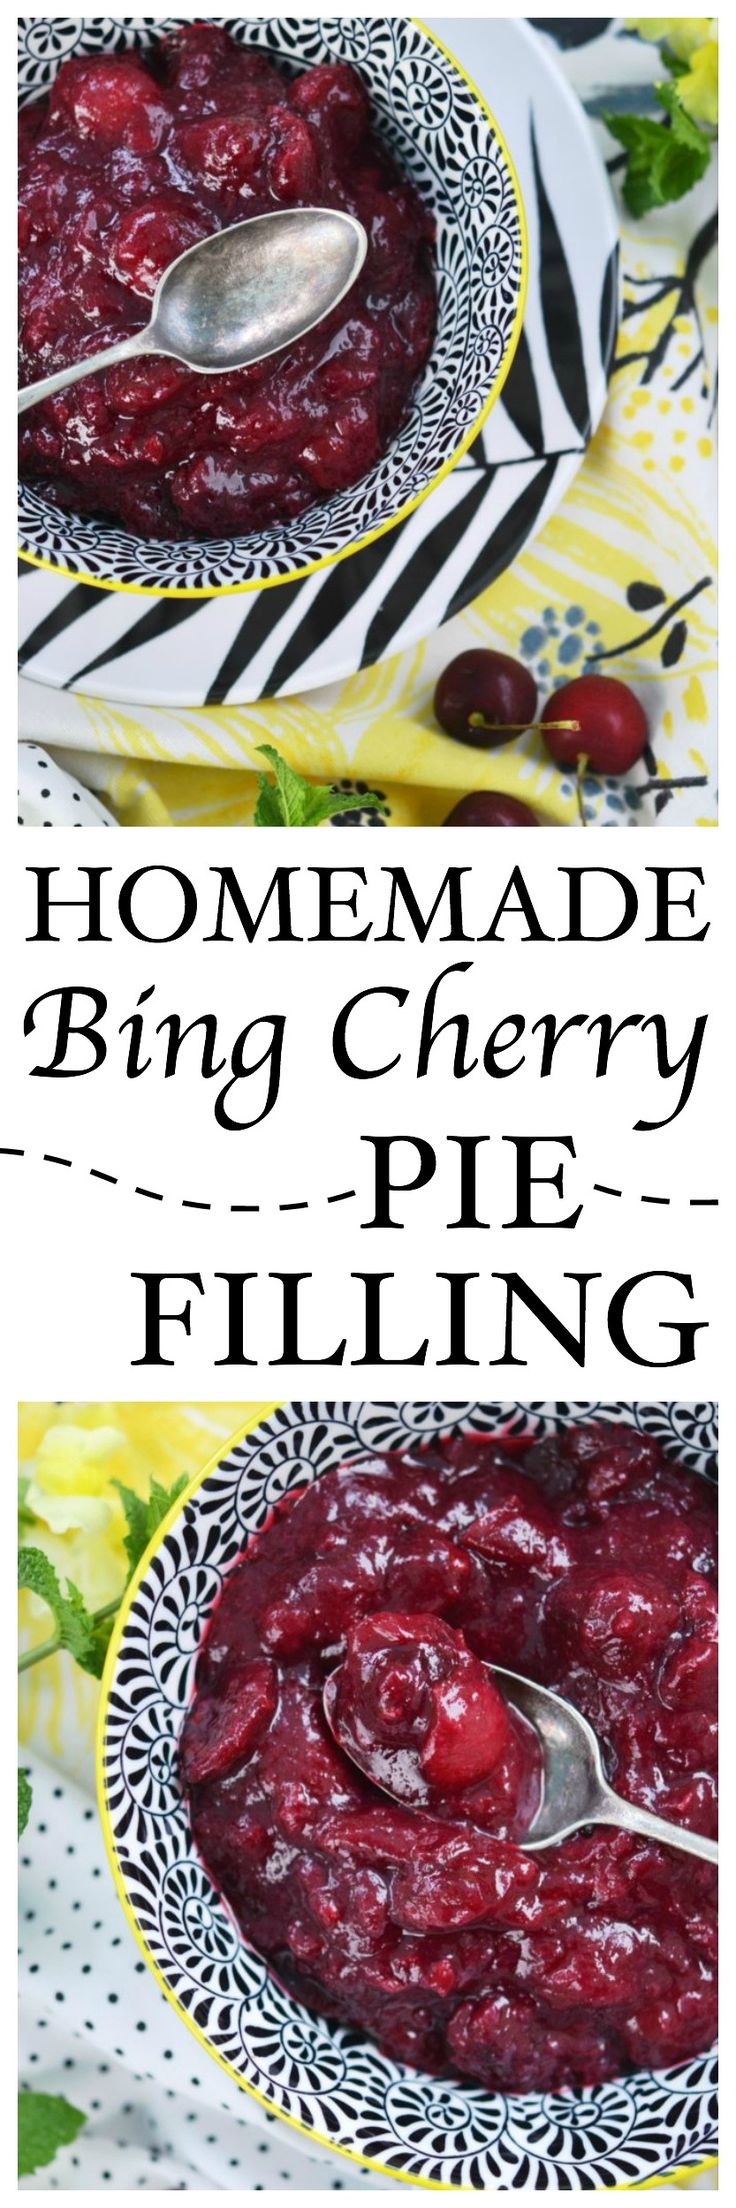 Homemade Bing Cherry Pie Filling Recipe Bing cherries